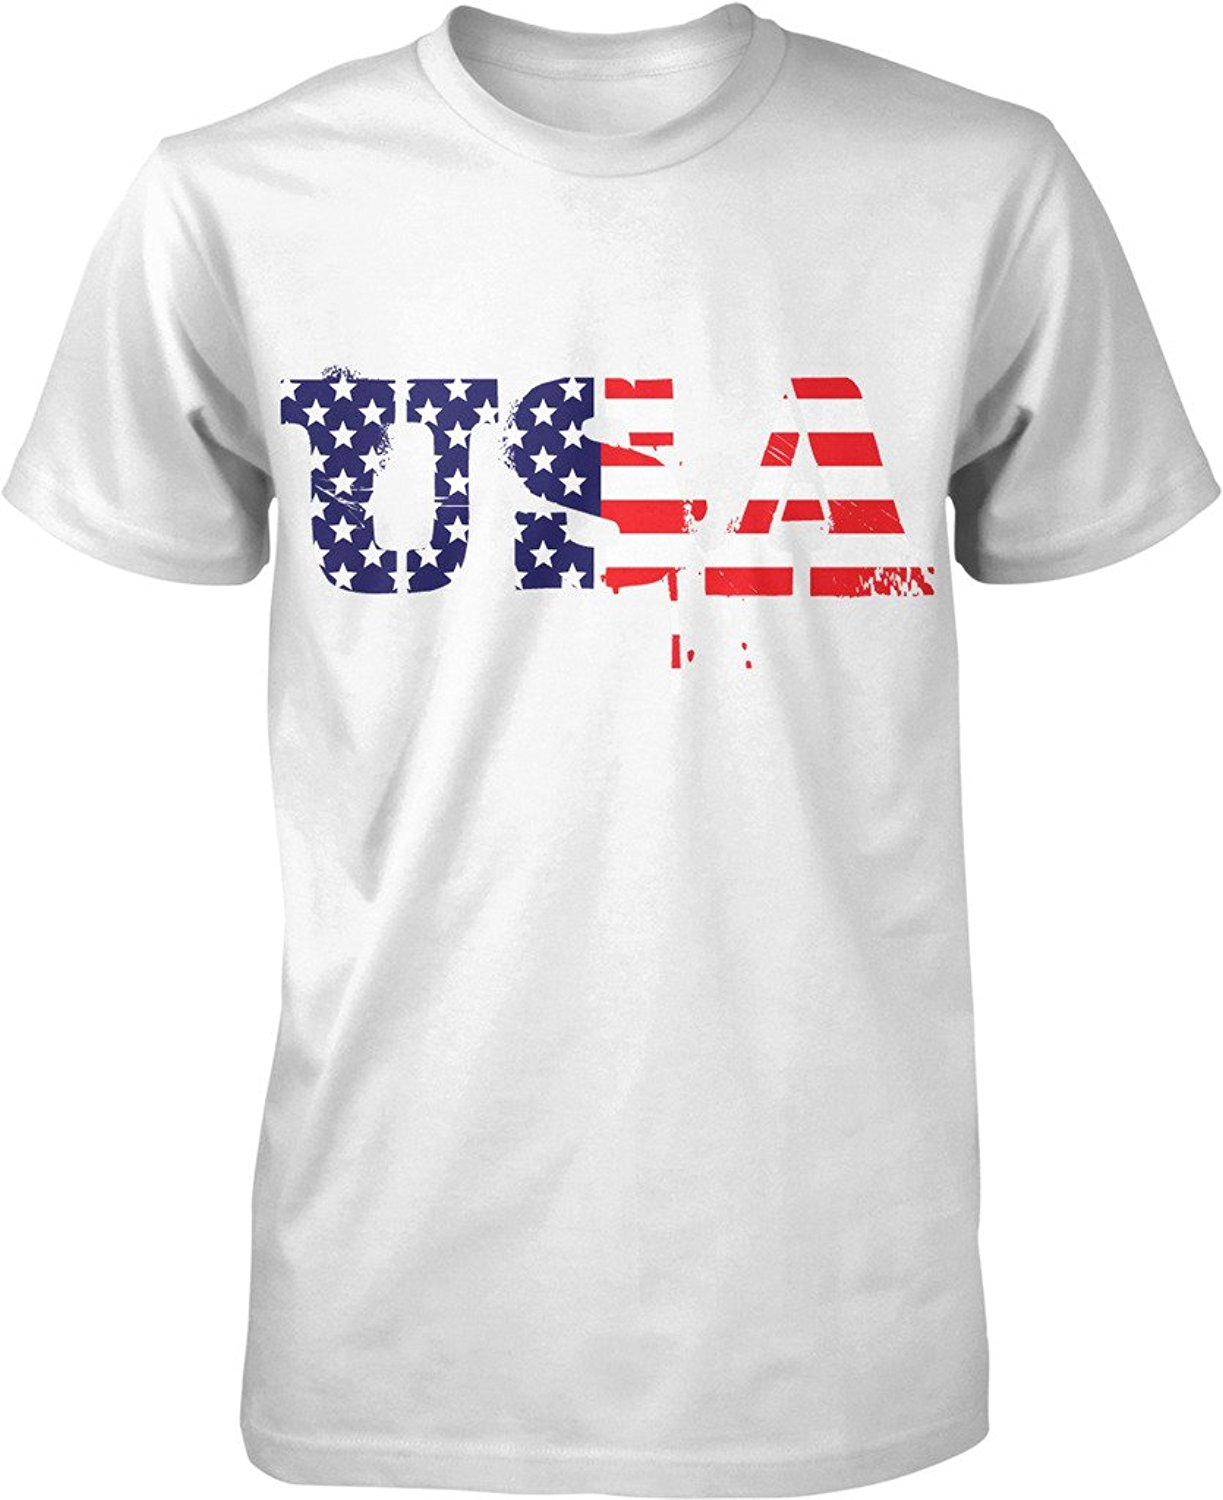 Shirt design usa - New Design Cotton Male Tee Shirt Designing Usa Red White Blue Us Flag American Pride Stars And Stripes Men S T Shirt